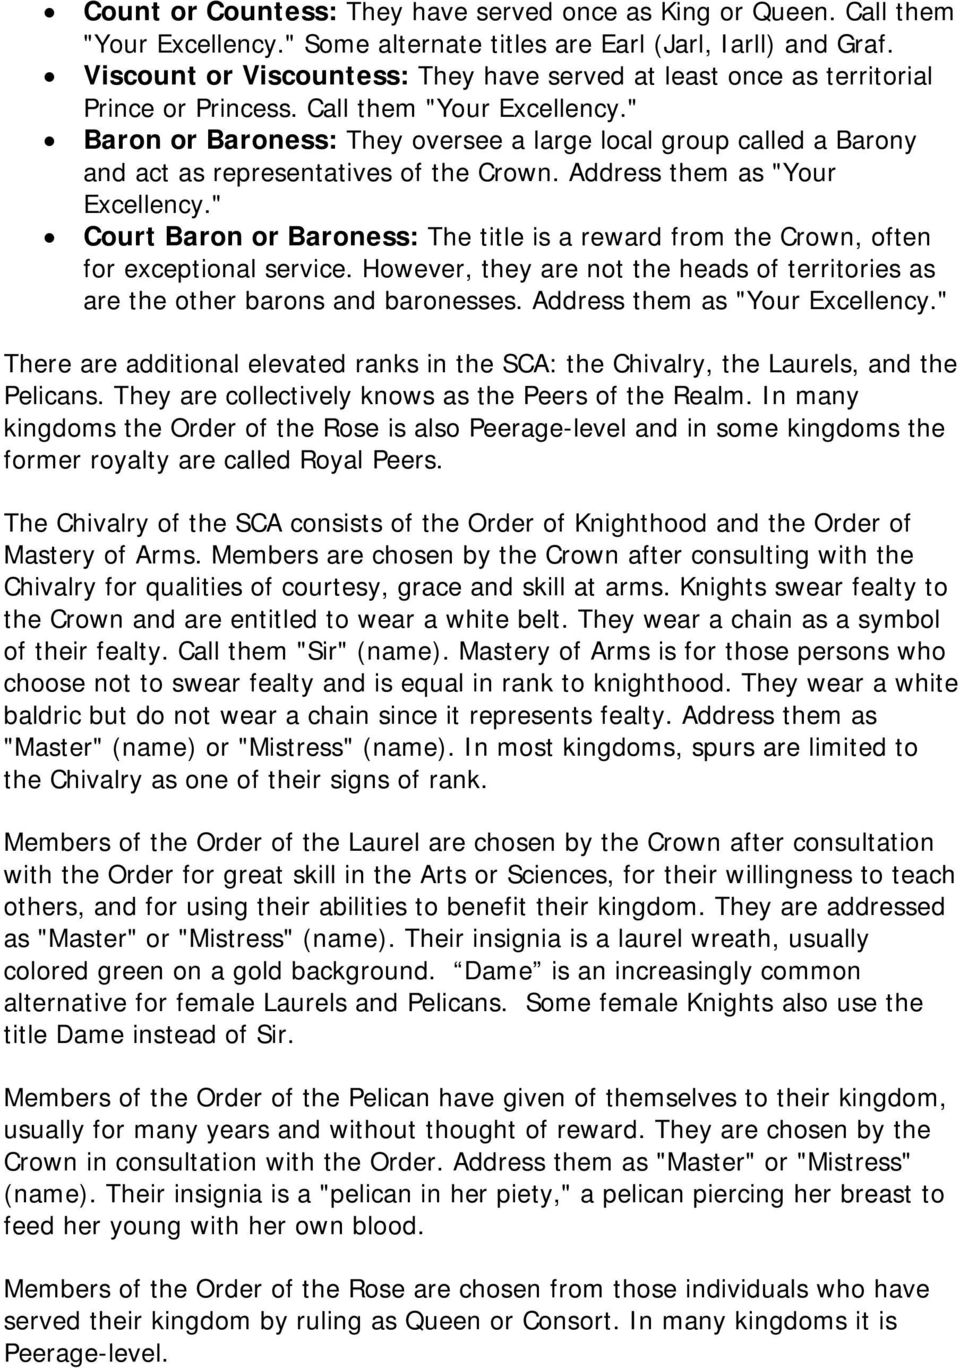 """ Baron or Baroness: They oversee a large local group called a Barony and act as representatives of the Crown. Address them as ""Your Excellency."